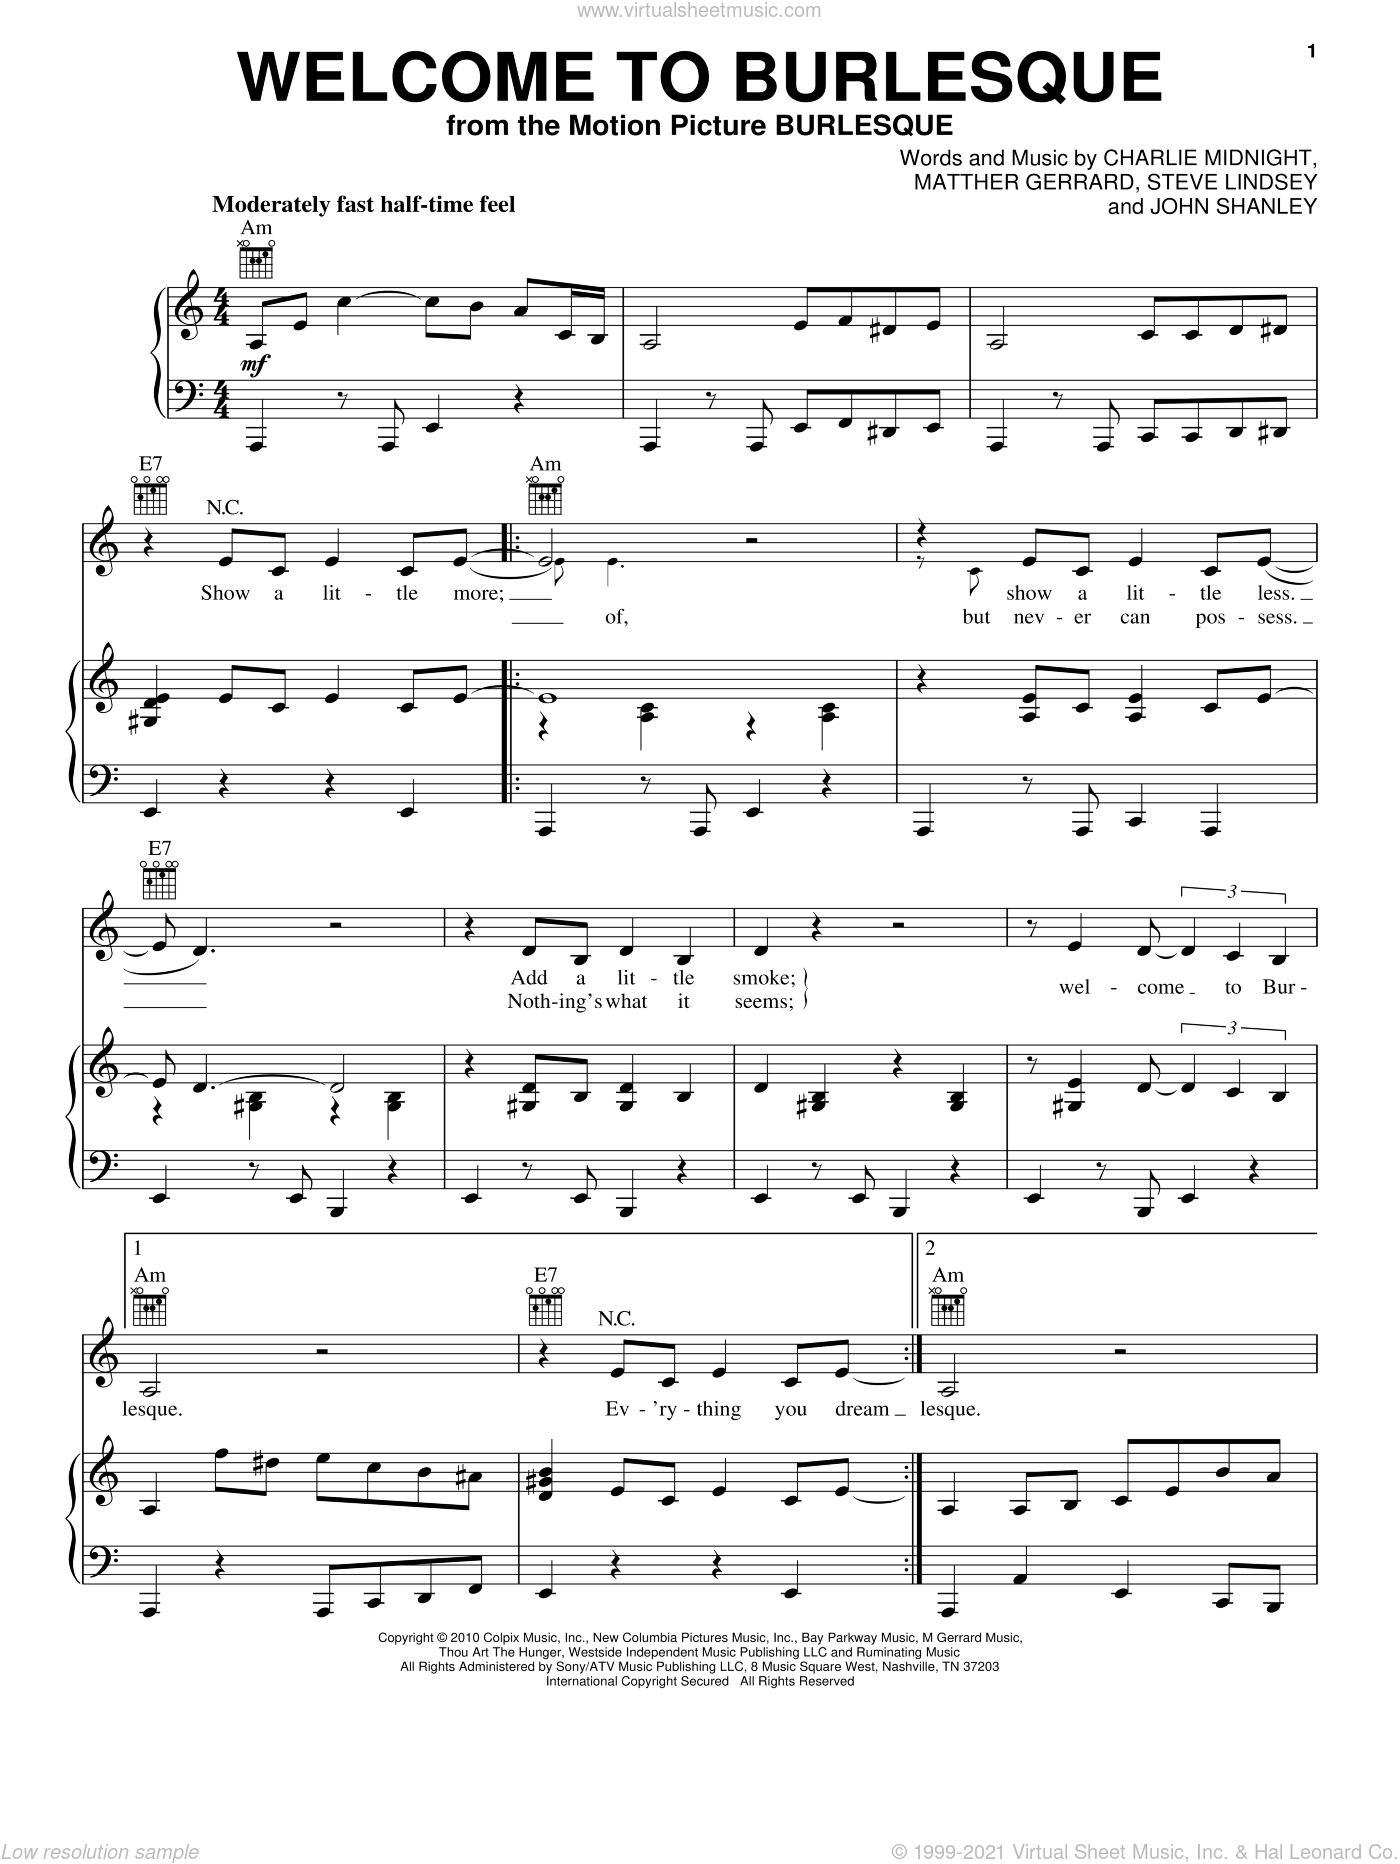 Welcome To Burlesque sheet music for voice, piano or guitar by Steve Lindsey